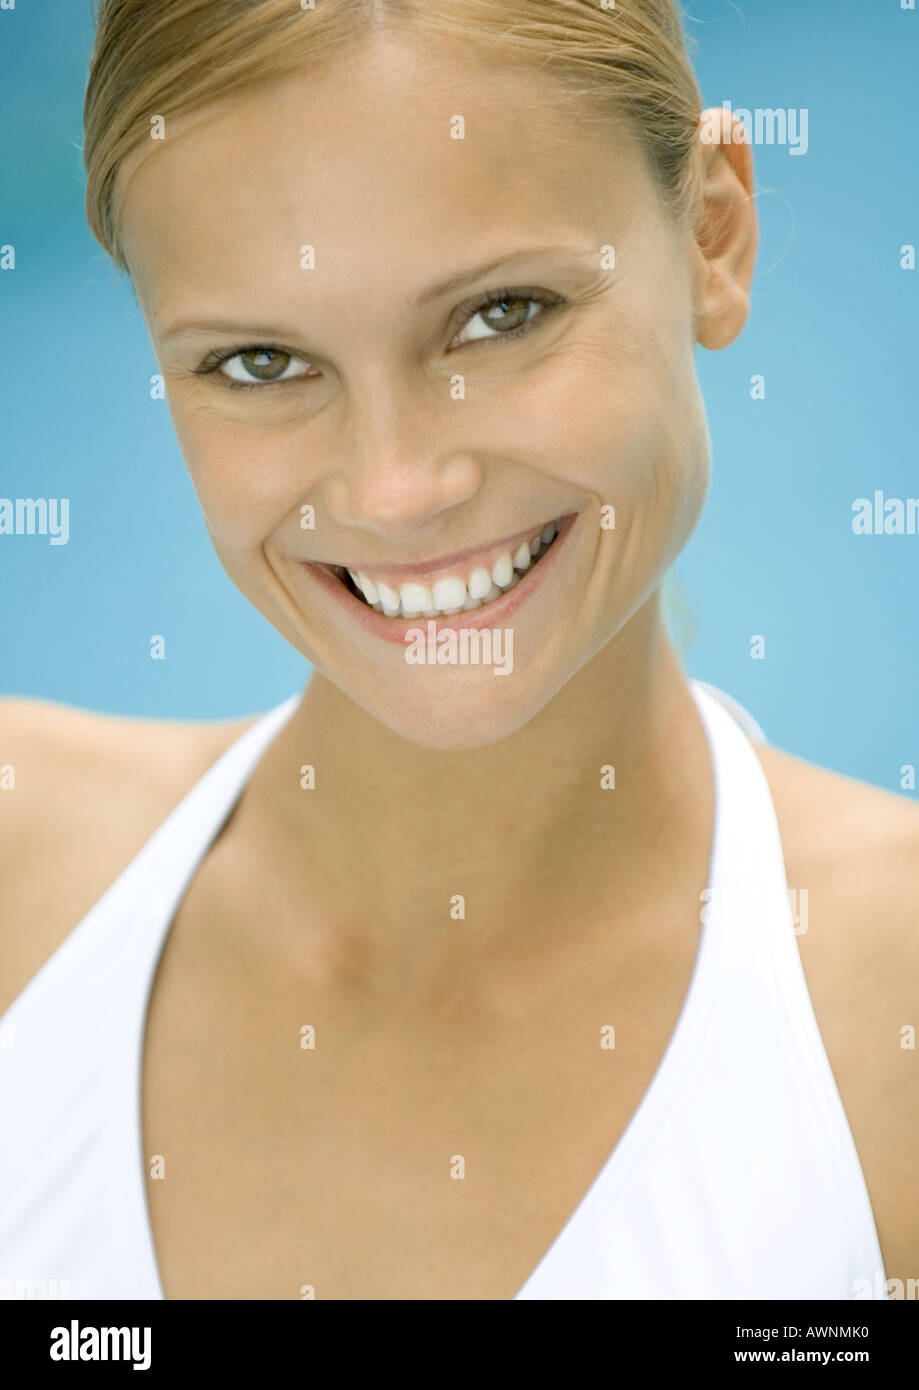 Woman in bathing suit smiling, potrait - Stock Image